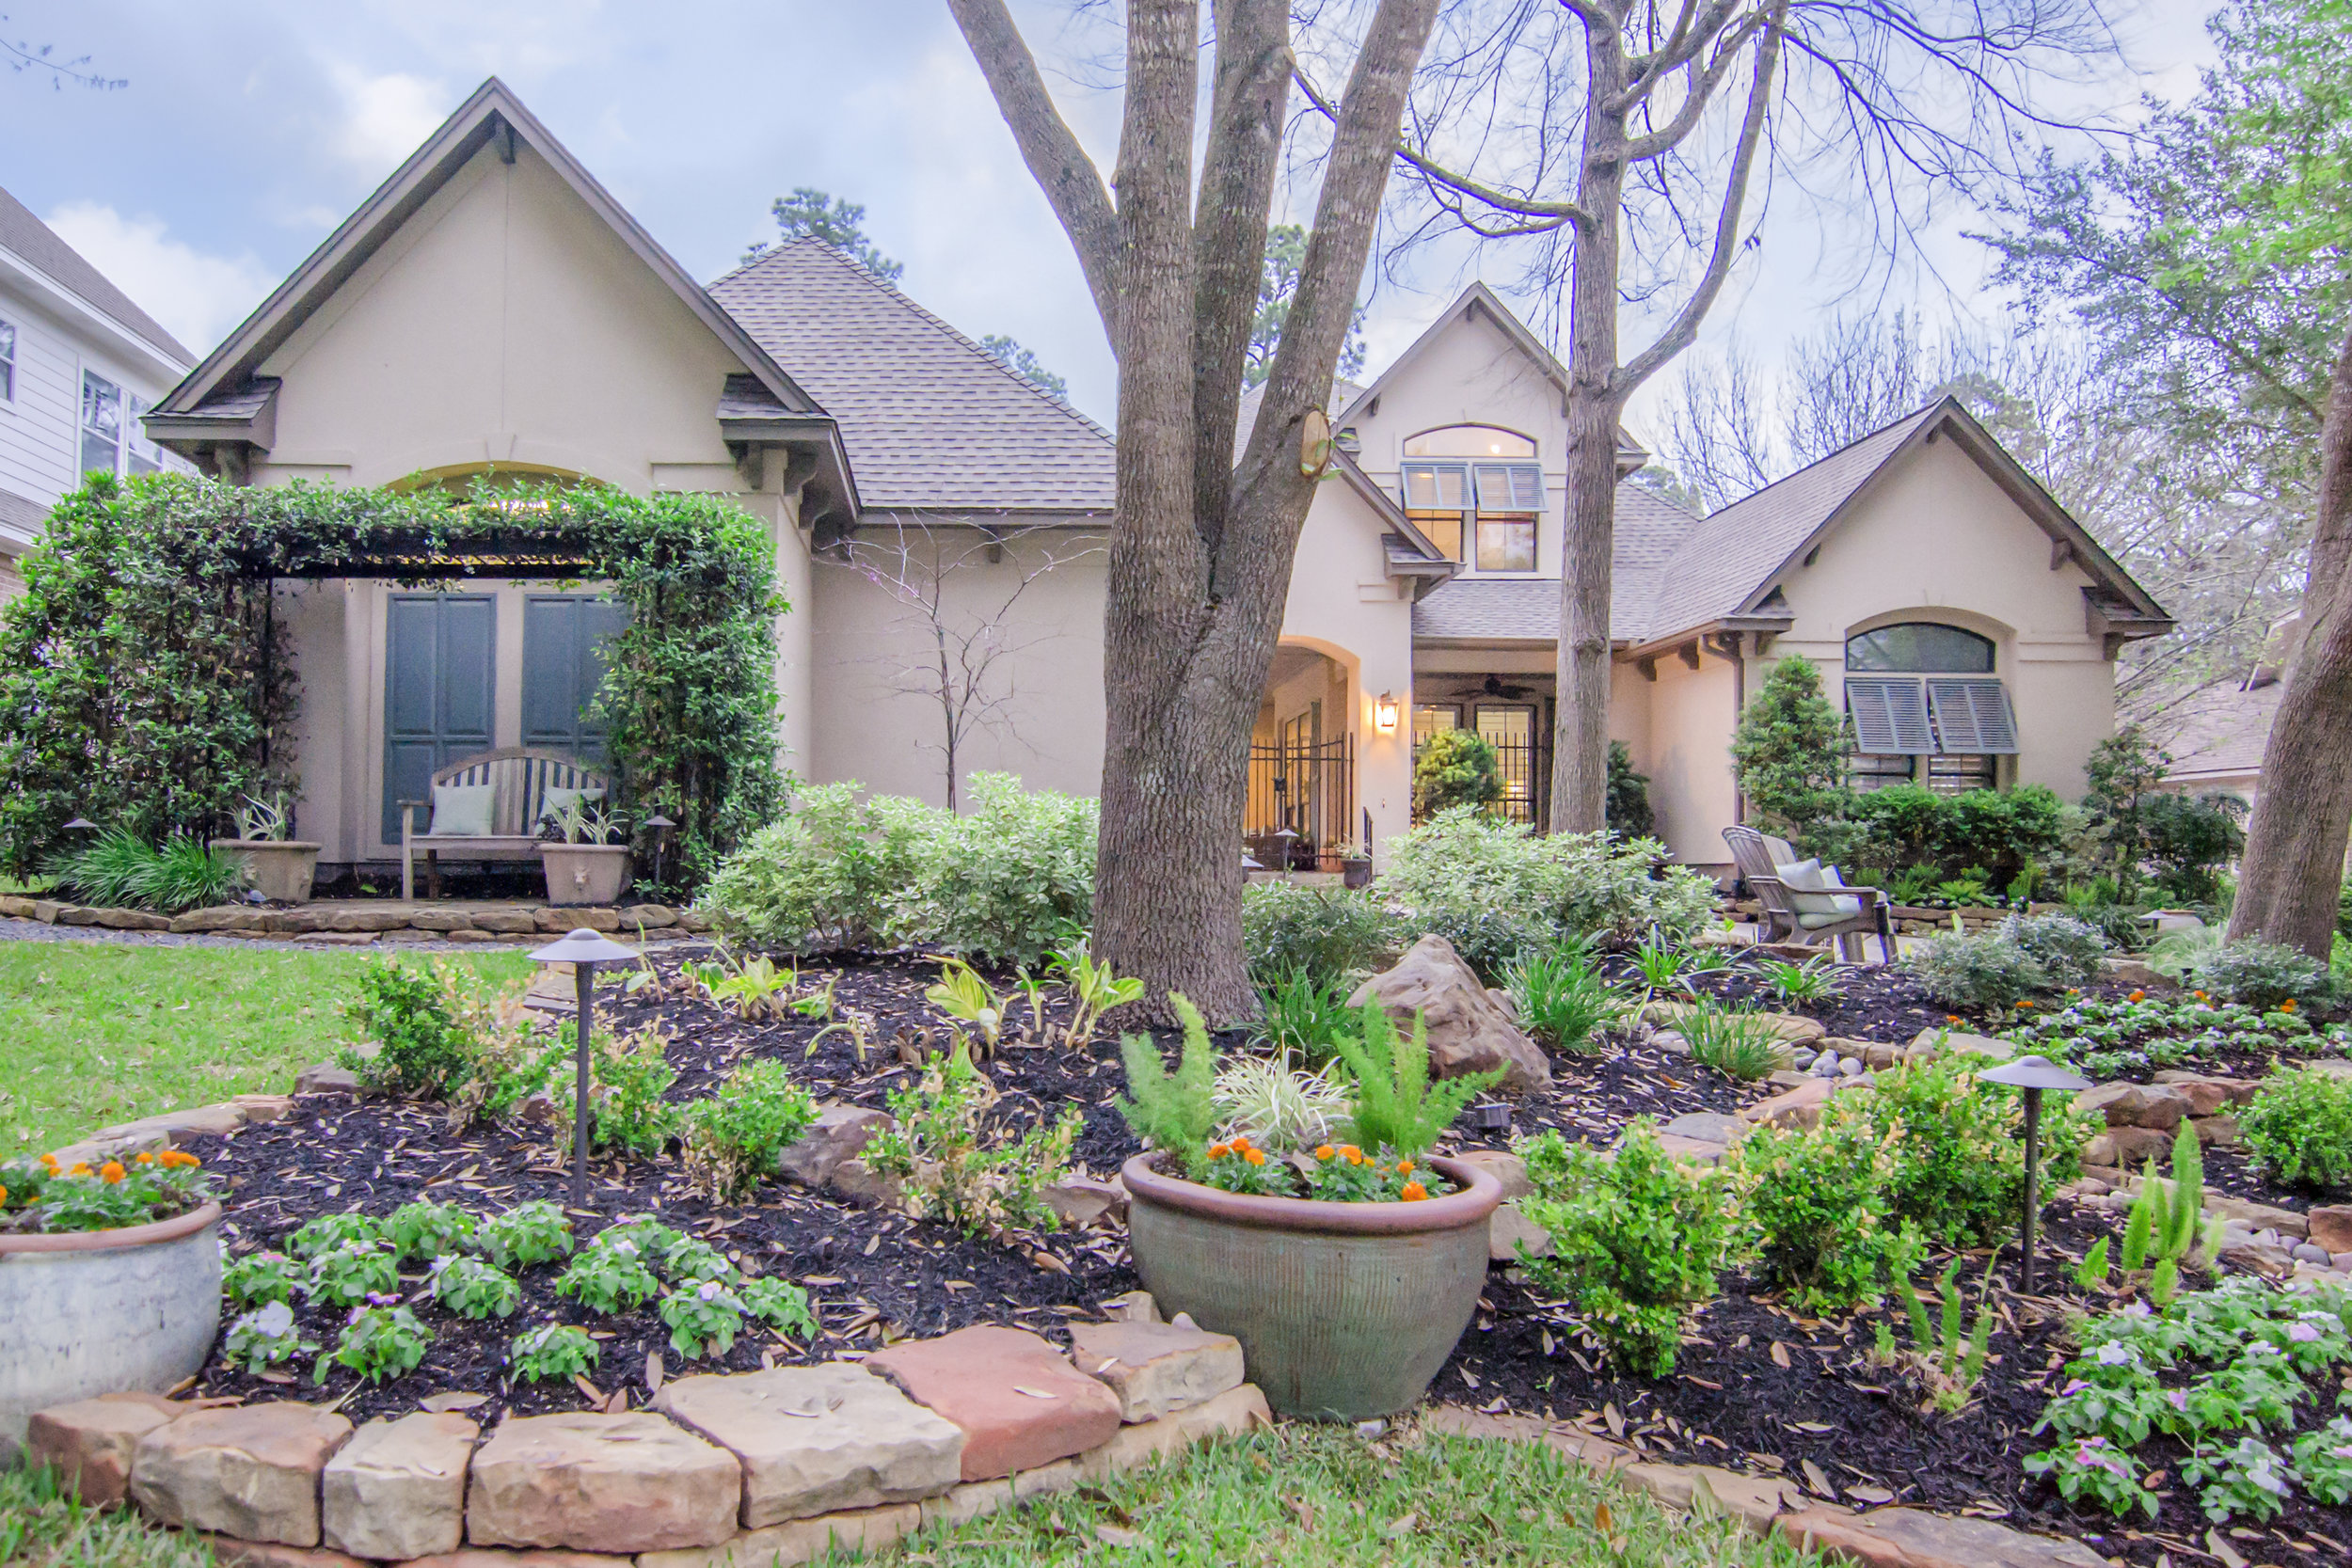 46 Thymewood, The Woodlands